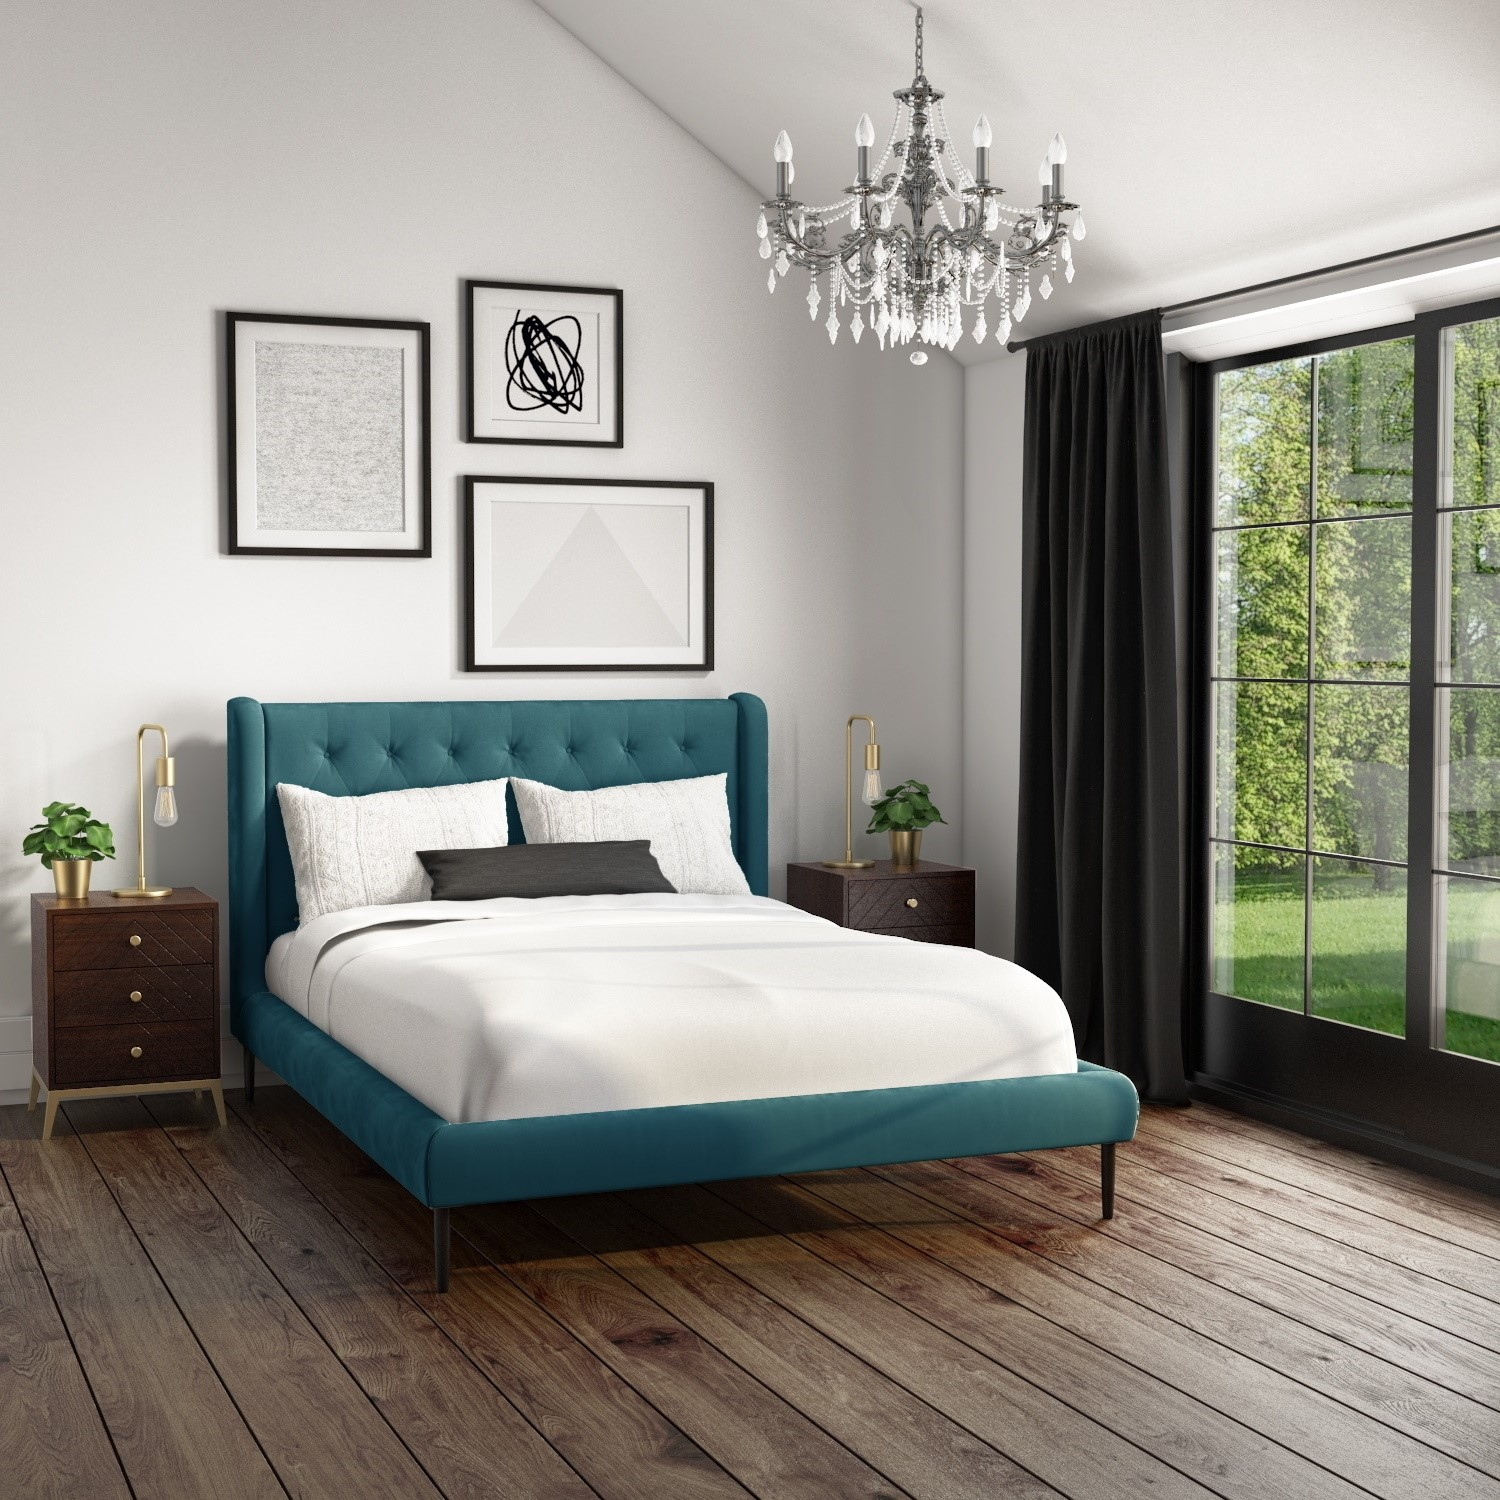 Amara King Size Bed Frame In Teal Velvet With Quilted Headboard Furniture123